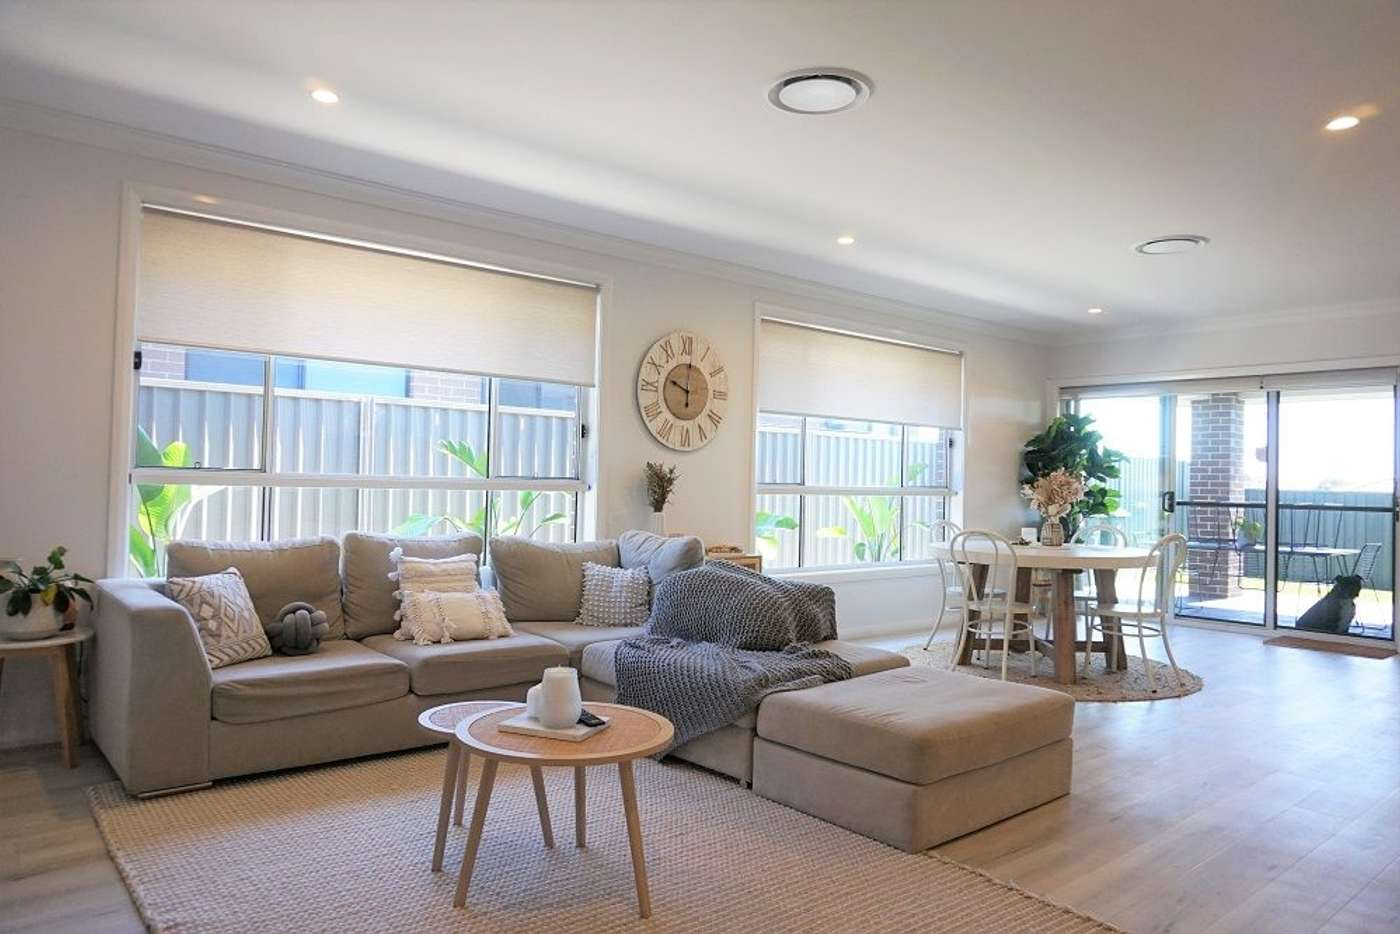 Seventh view of Homely house listing, 7 Chalker Street, Thirlmere NSW 2572